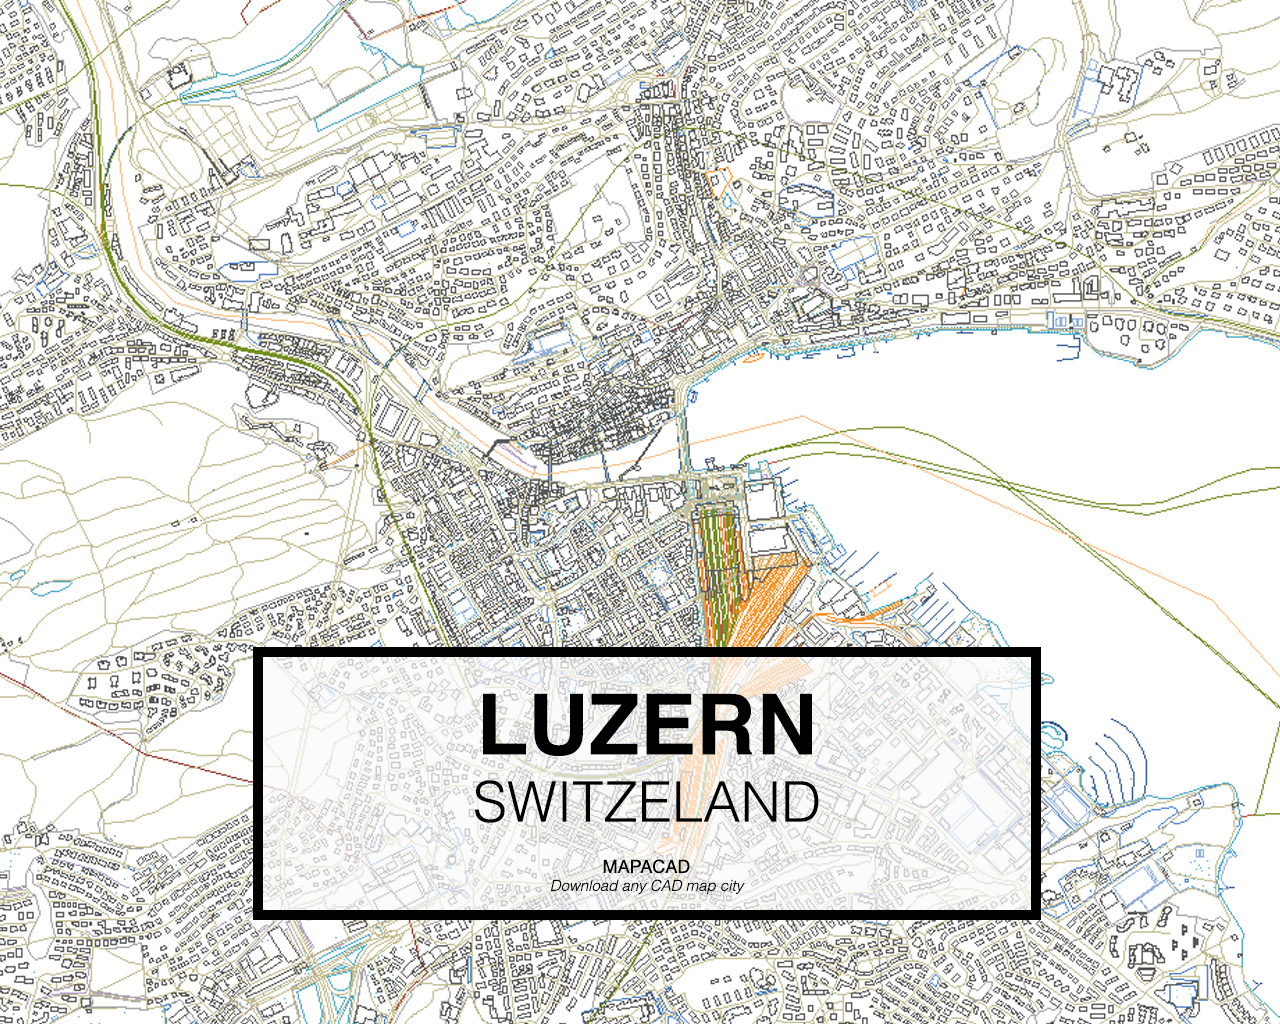 Download luzern dwg mapacad luzern switzeland 02 mapacad download map cad dwg gumiabroncs Image collections